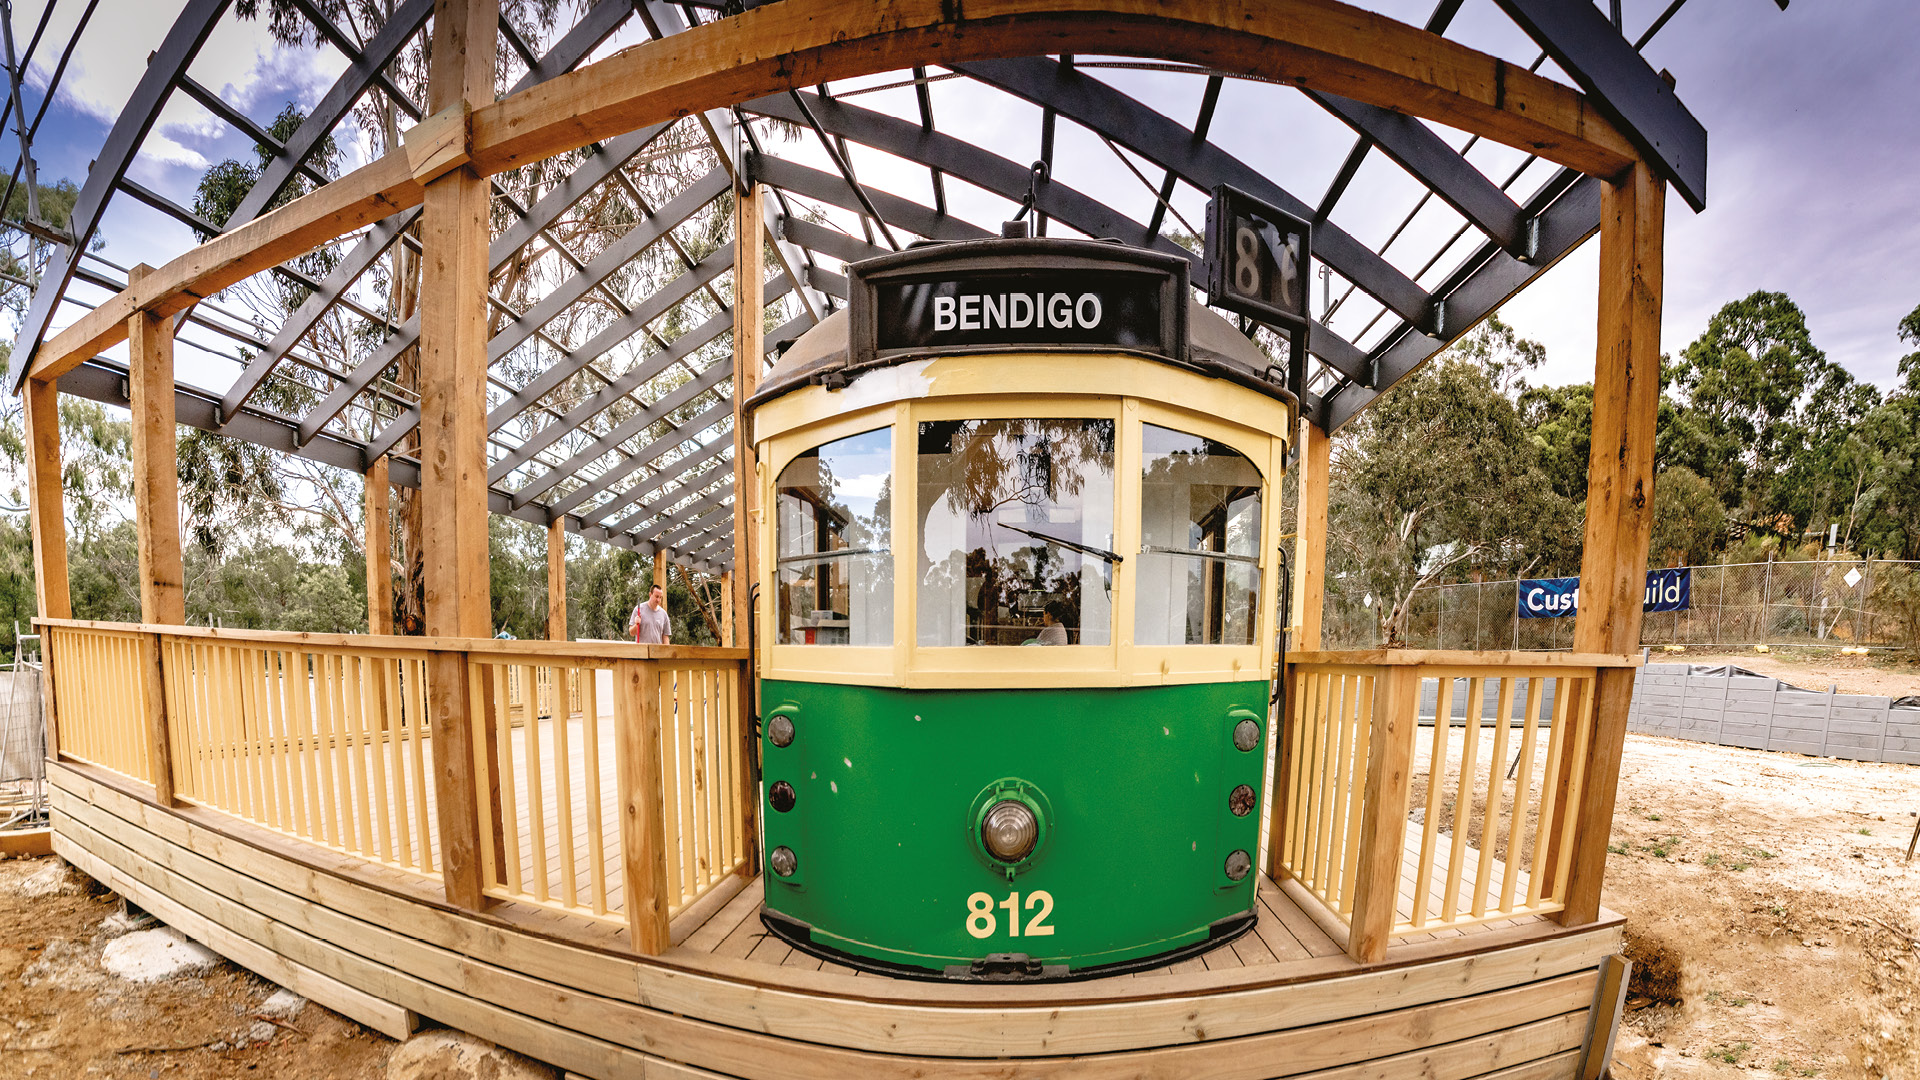 All aboard the Tram Cafe